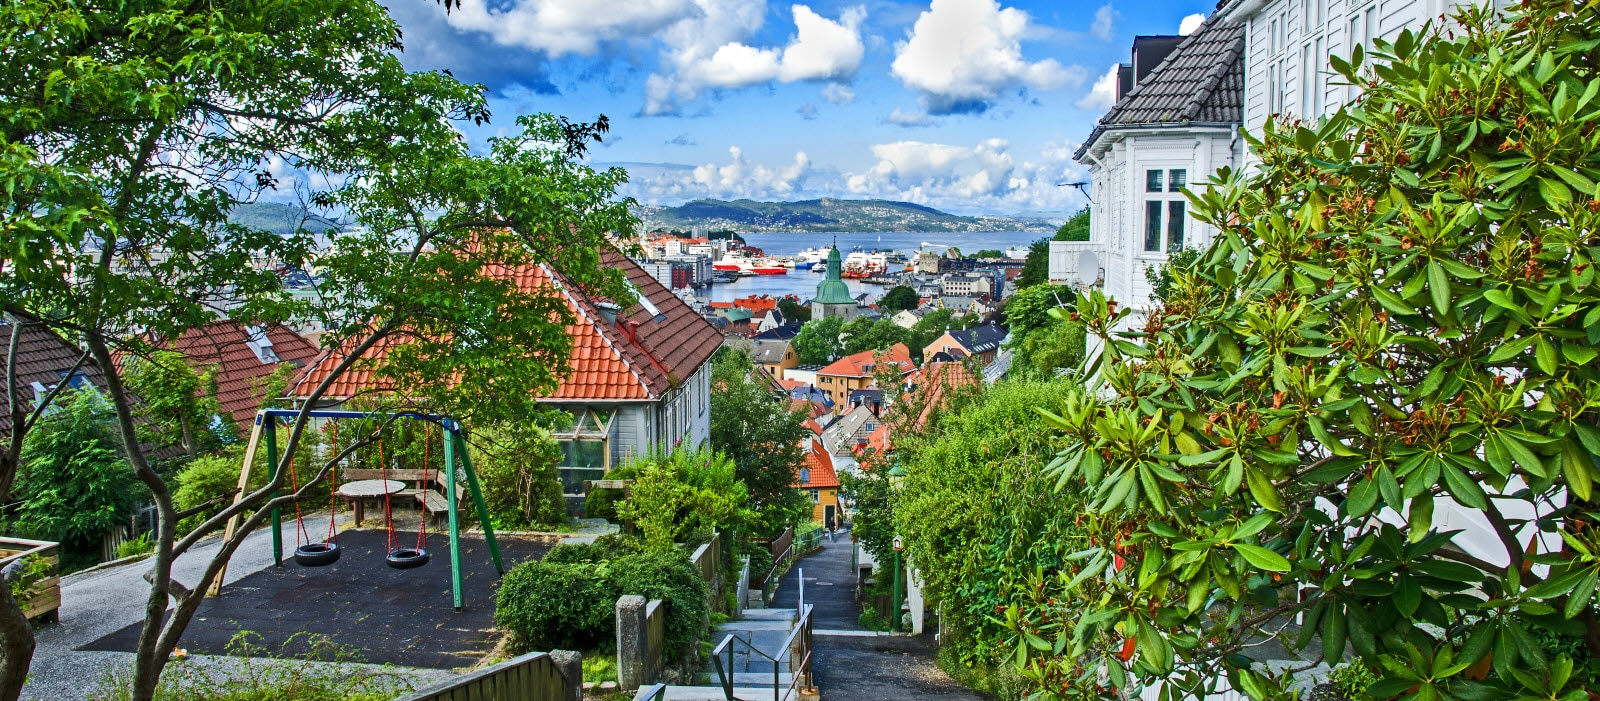 stock-photo-bergen-norway-my-hometown-125719939_by.jpg